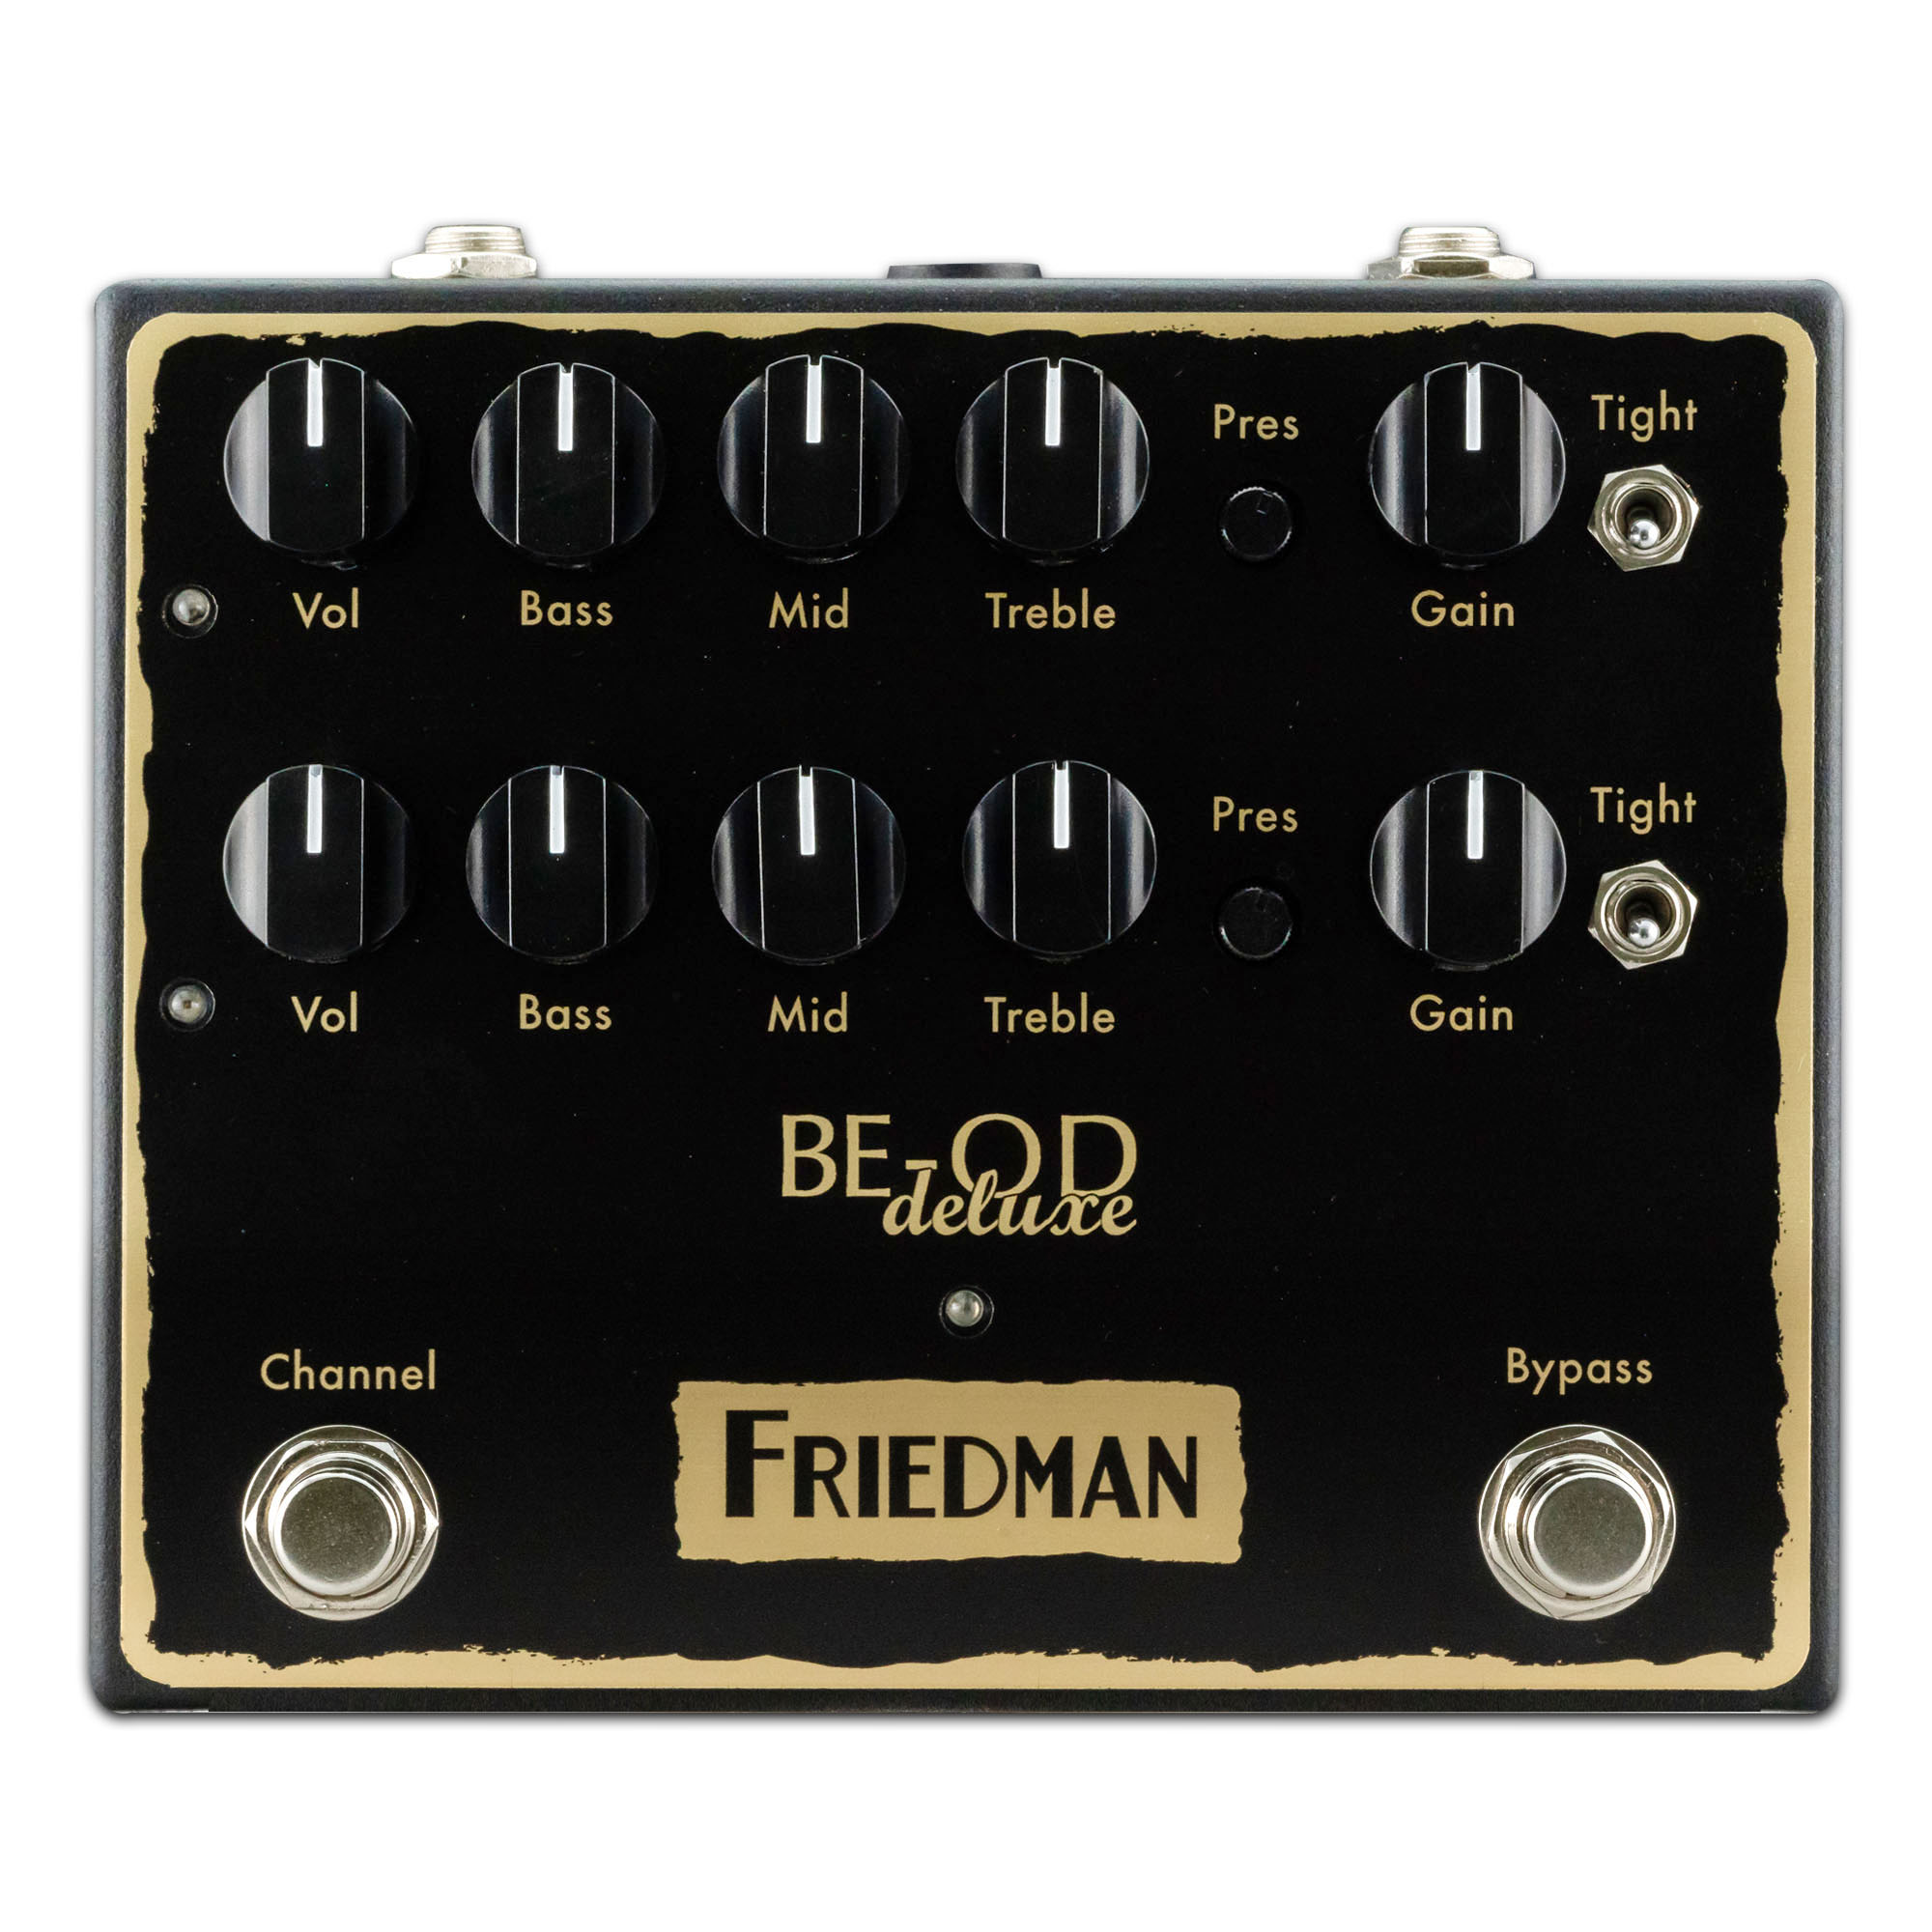 Friedman_BE-OD_Deluxe_top